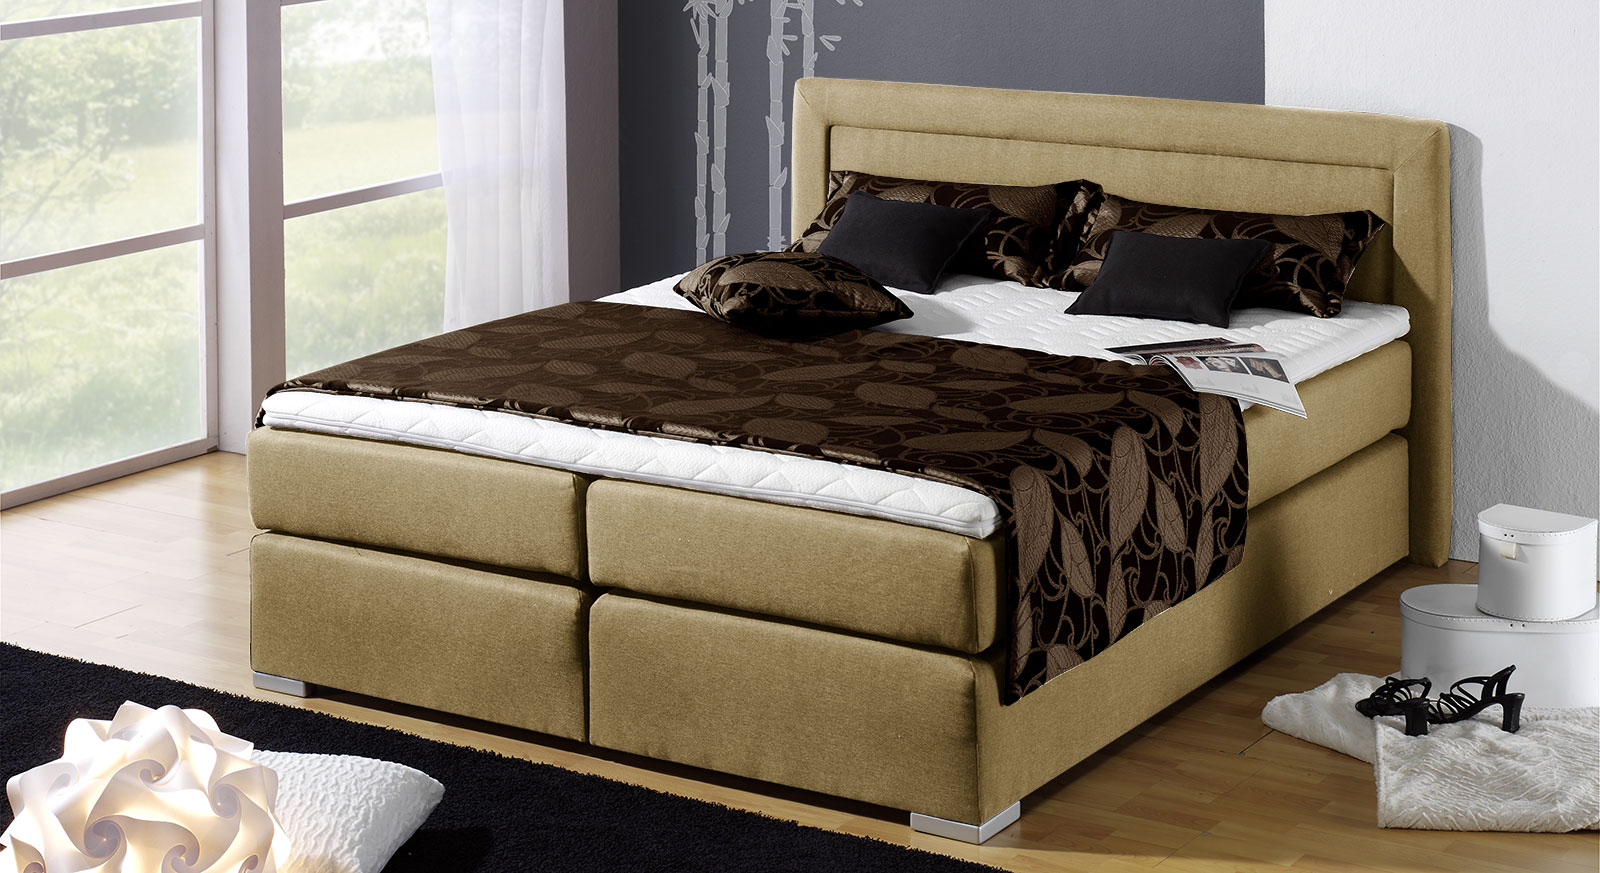 boxspring bett g nstig kaufen bei boxspringbett houston. Black Bedroom Furniture Sets. Home Design Ideas